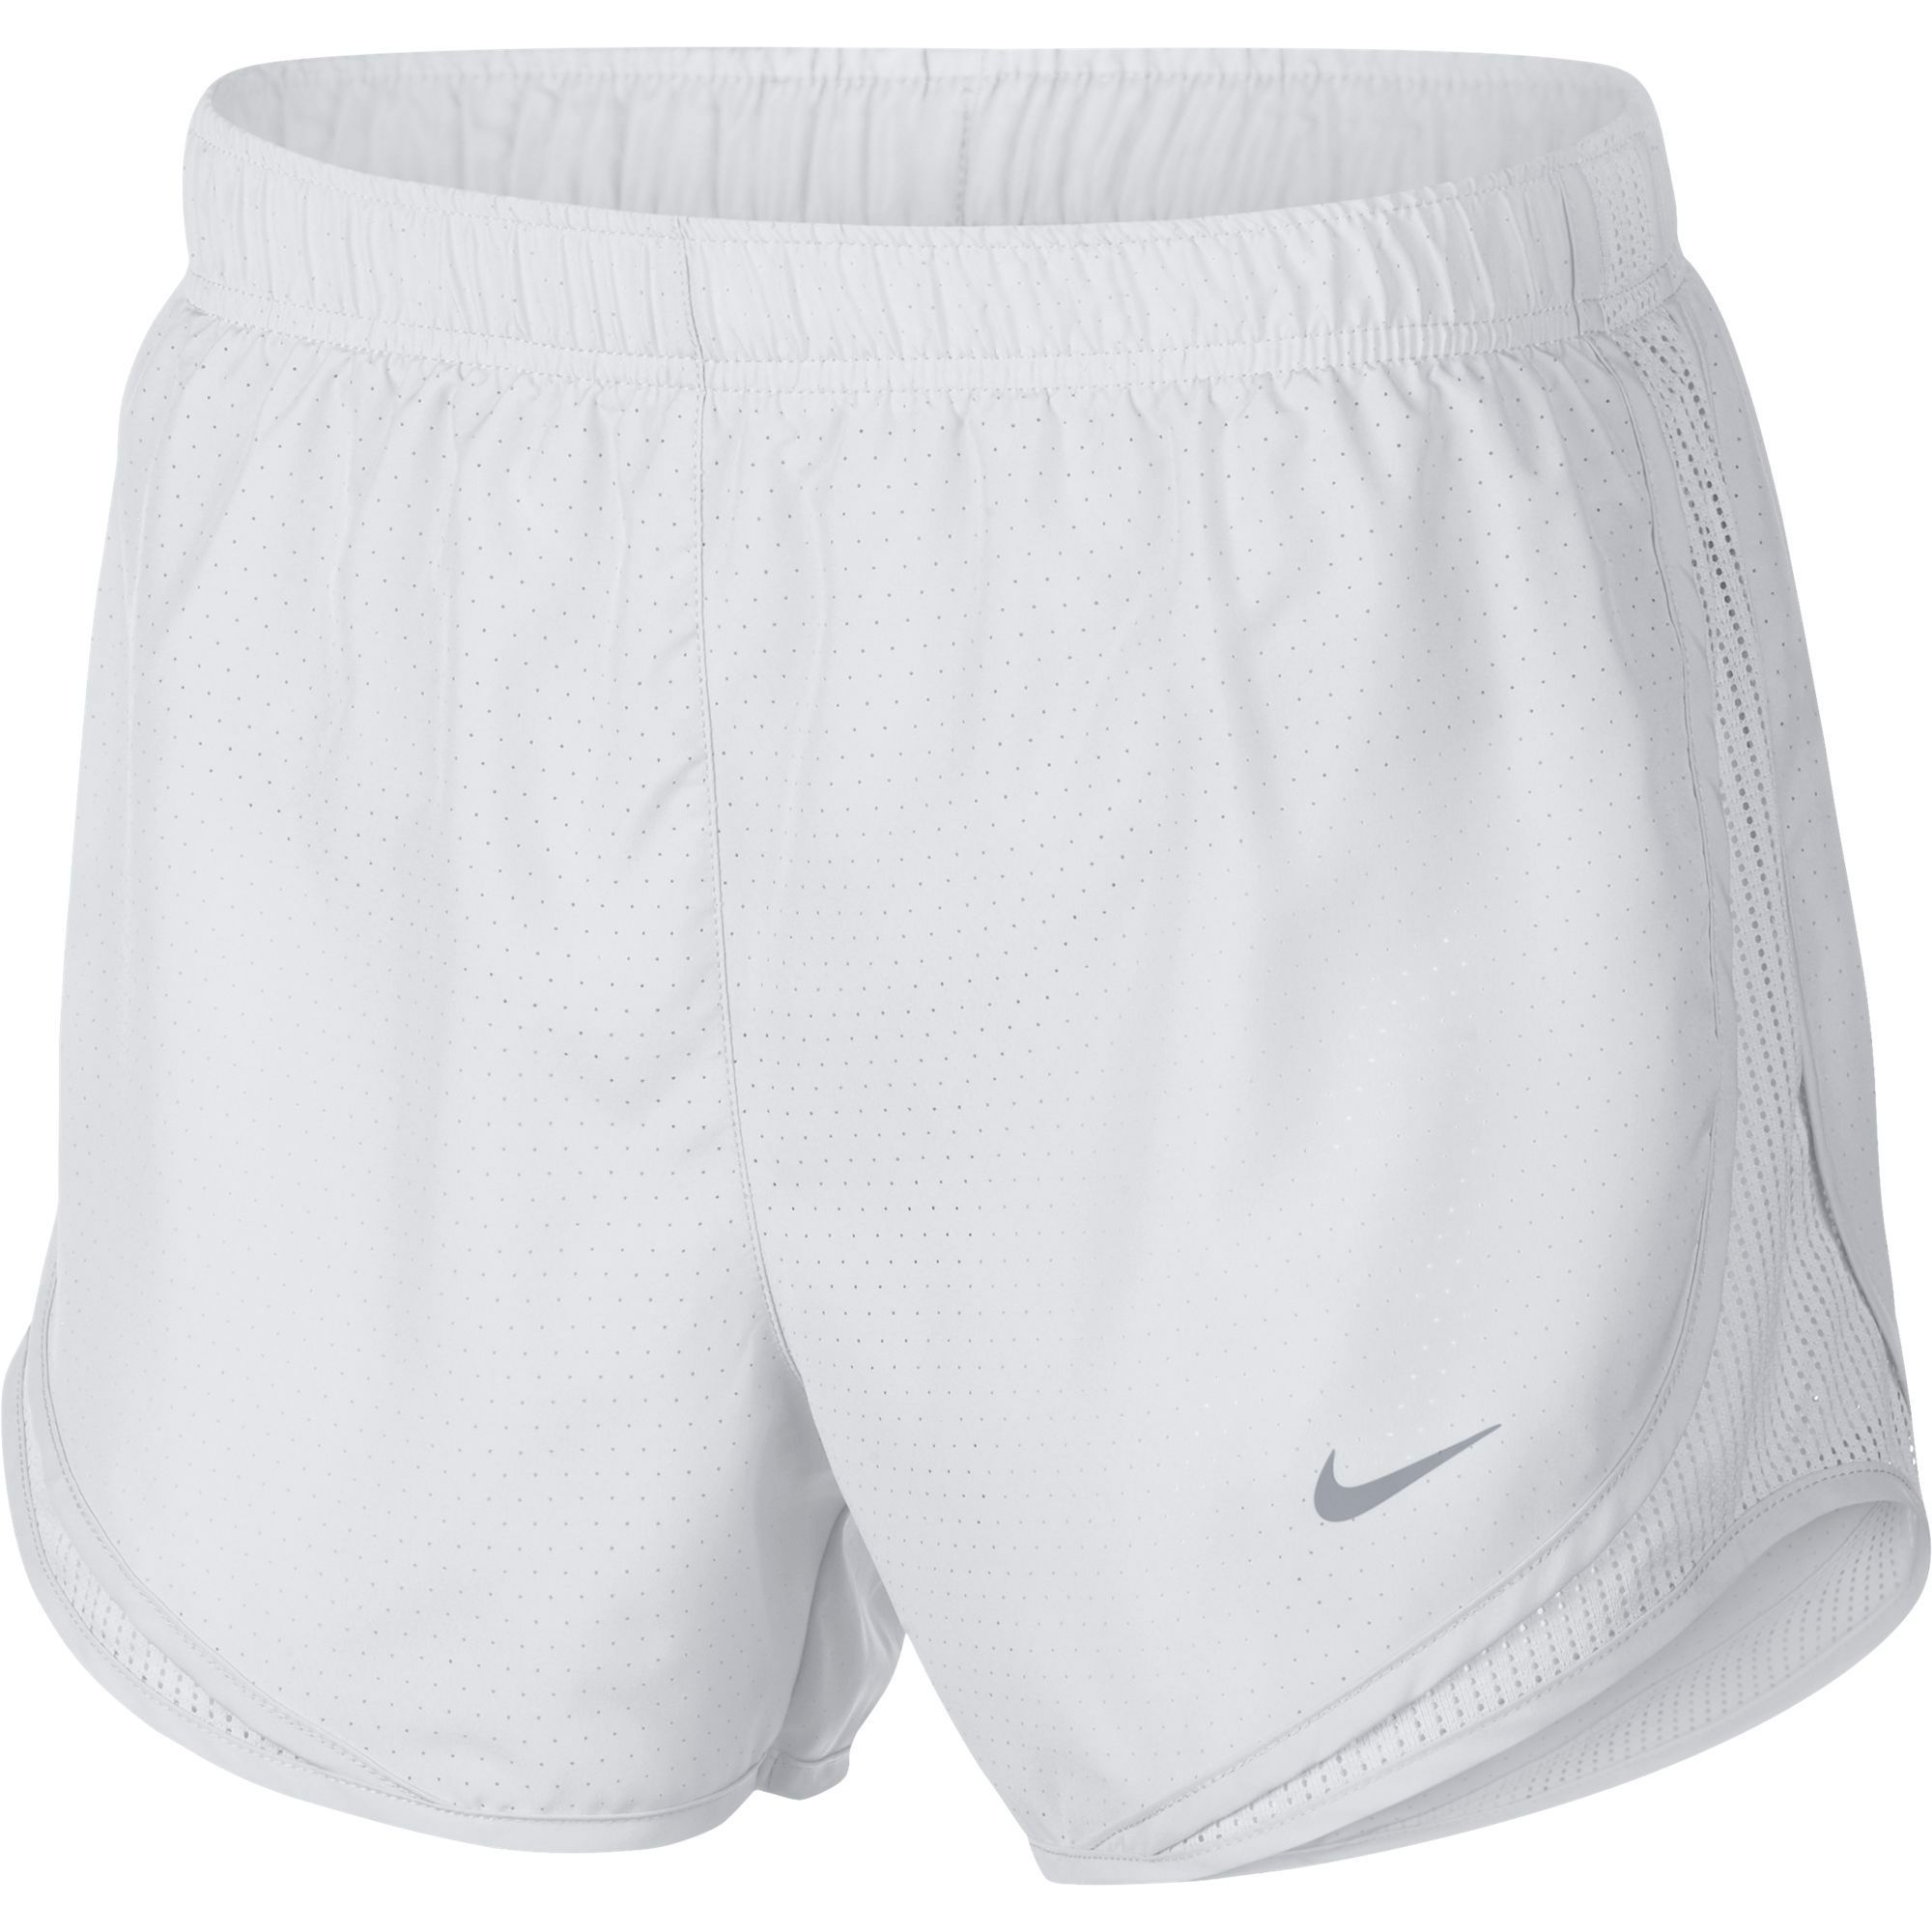 feea0381fb1ed Nike Women's Cool Dry Tempo Running Shorts in 2019 | Products | Nike ...